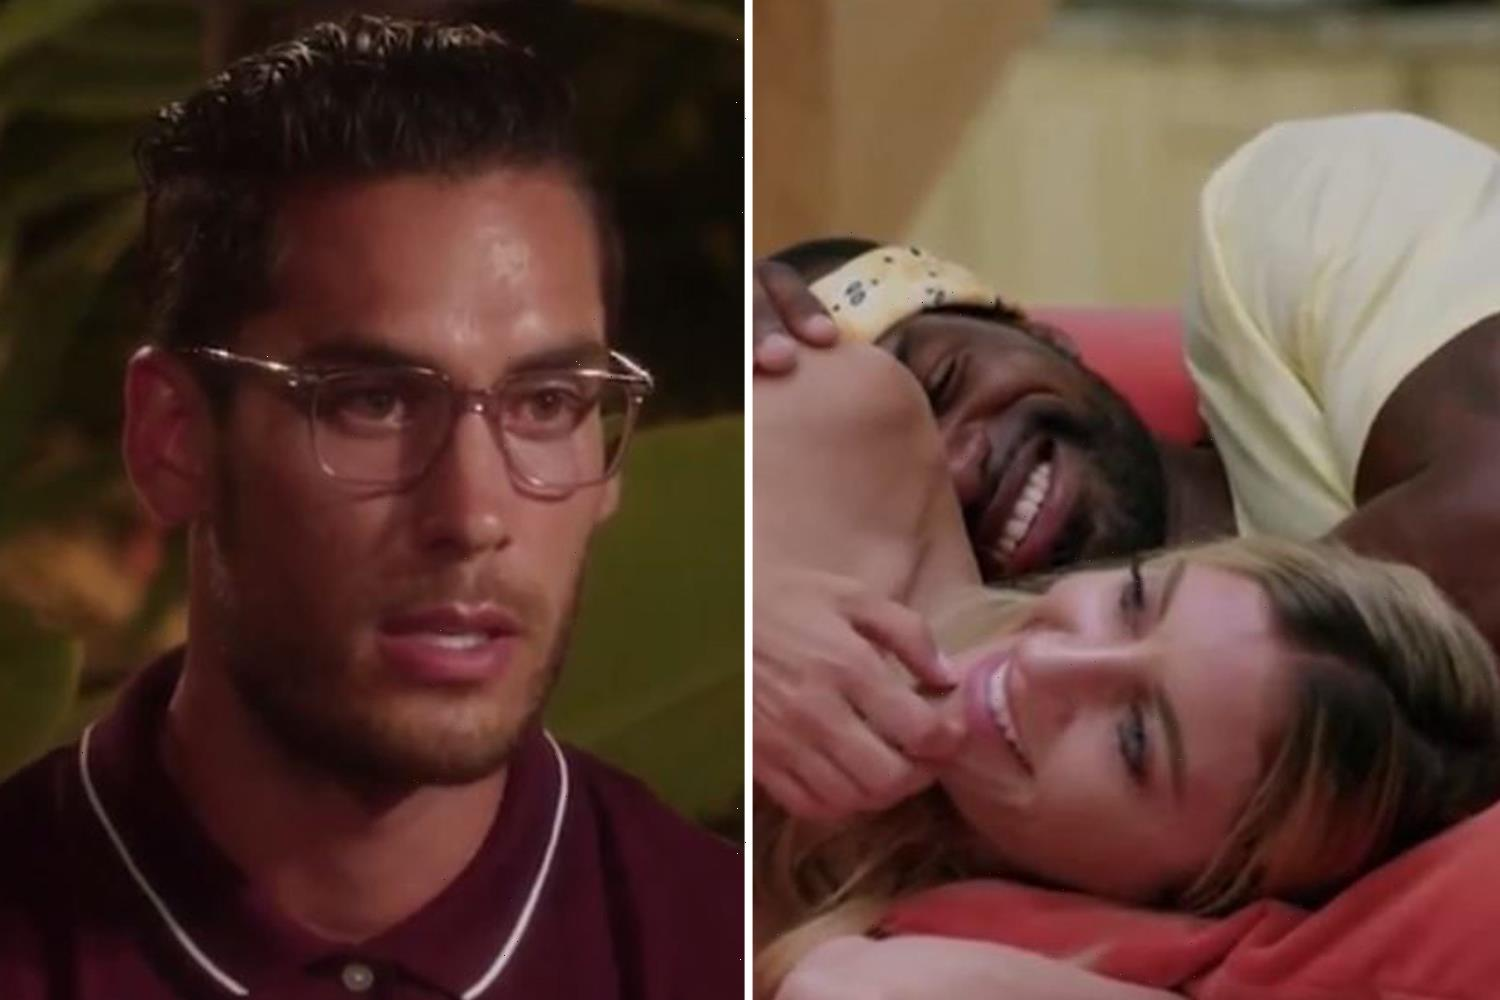 Temptation Island fans slam David over 'crocodile tears' after his 'wild' night as his girlfriend Kate stays loyal